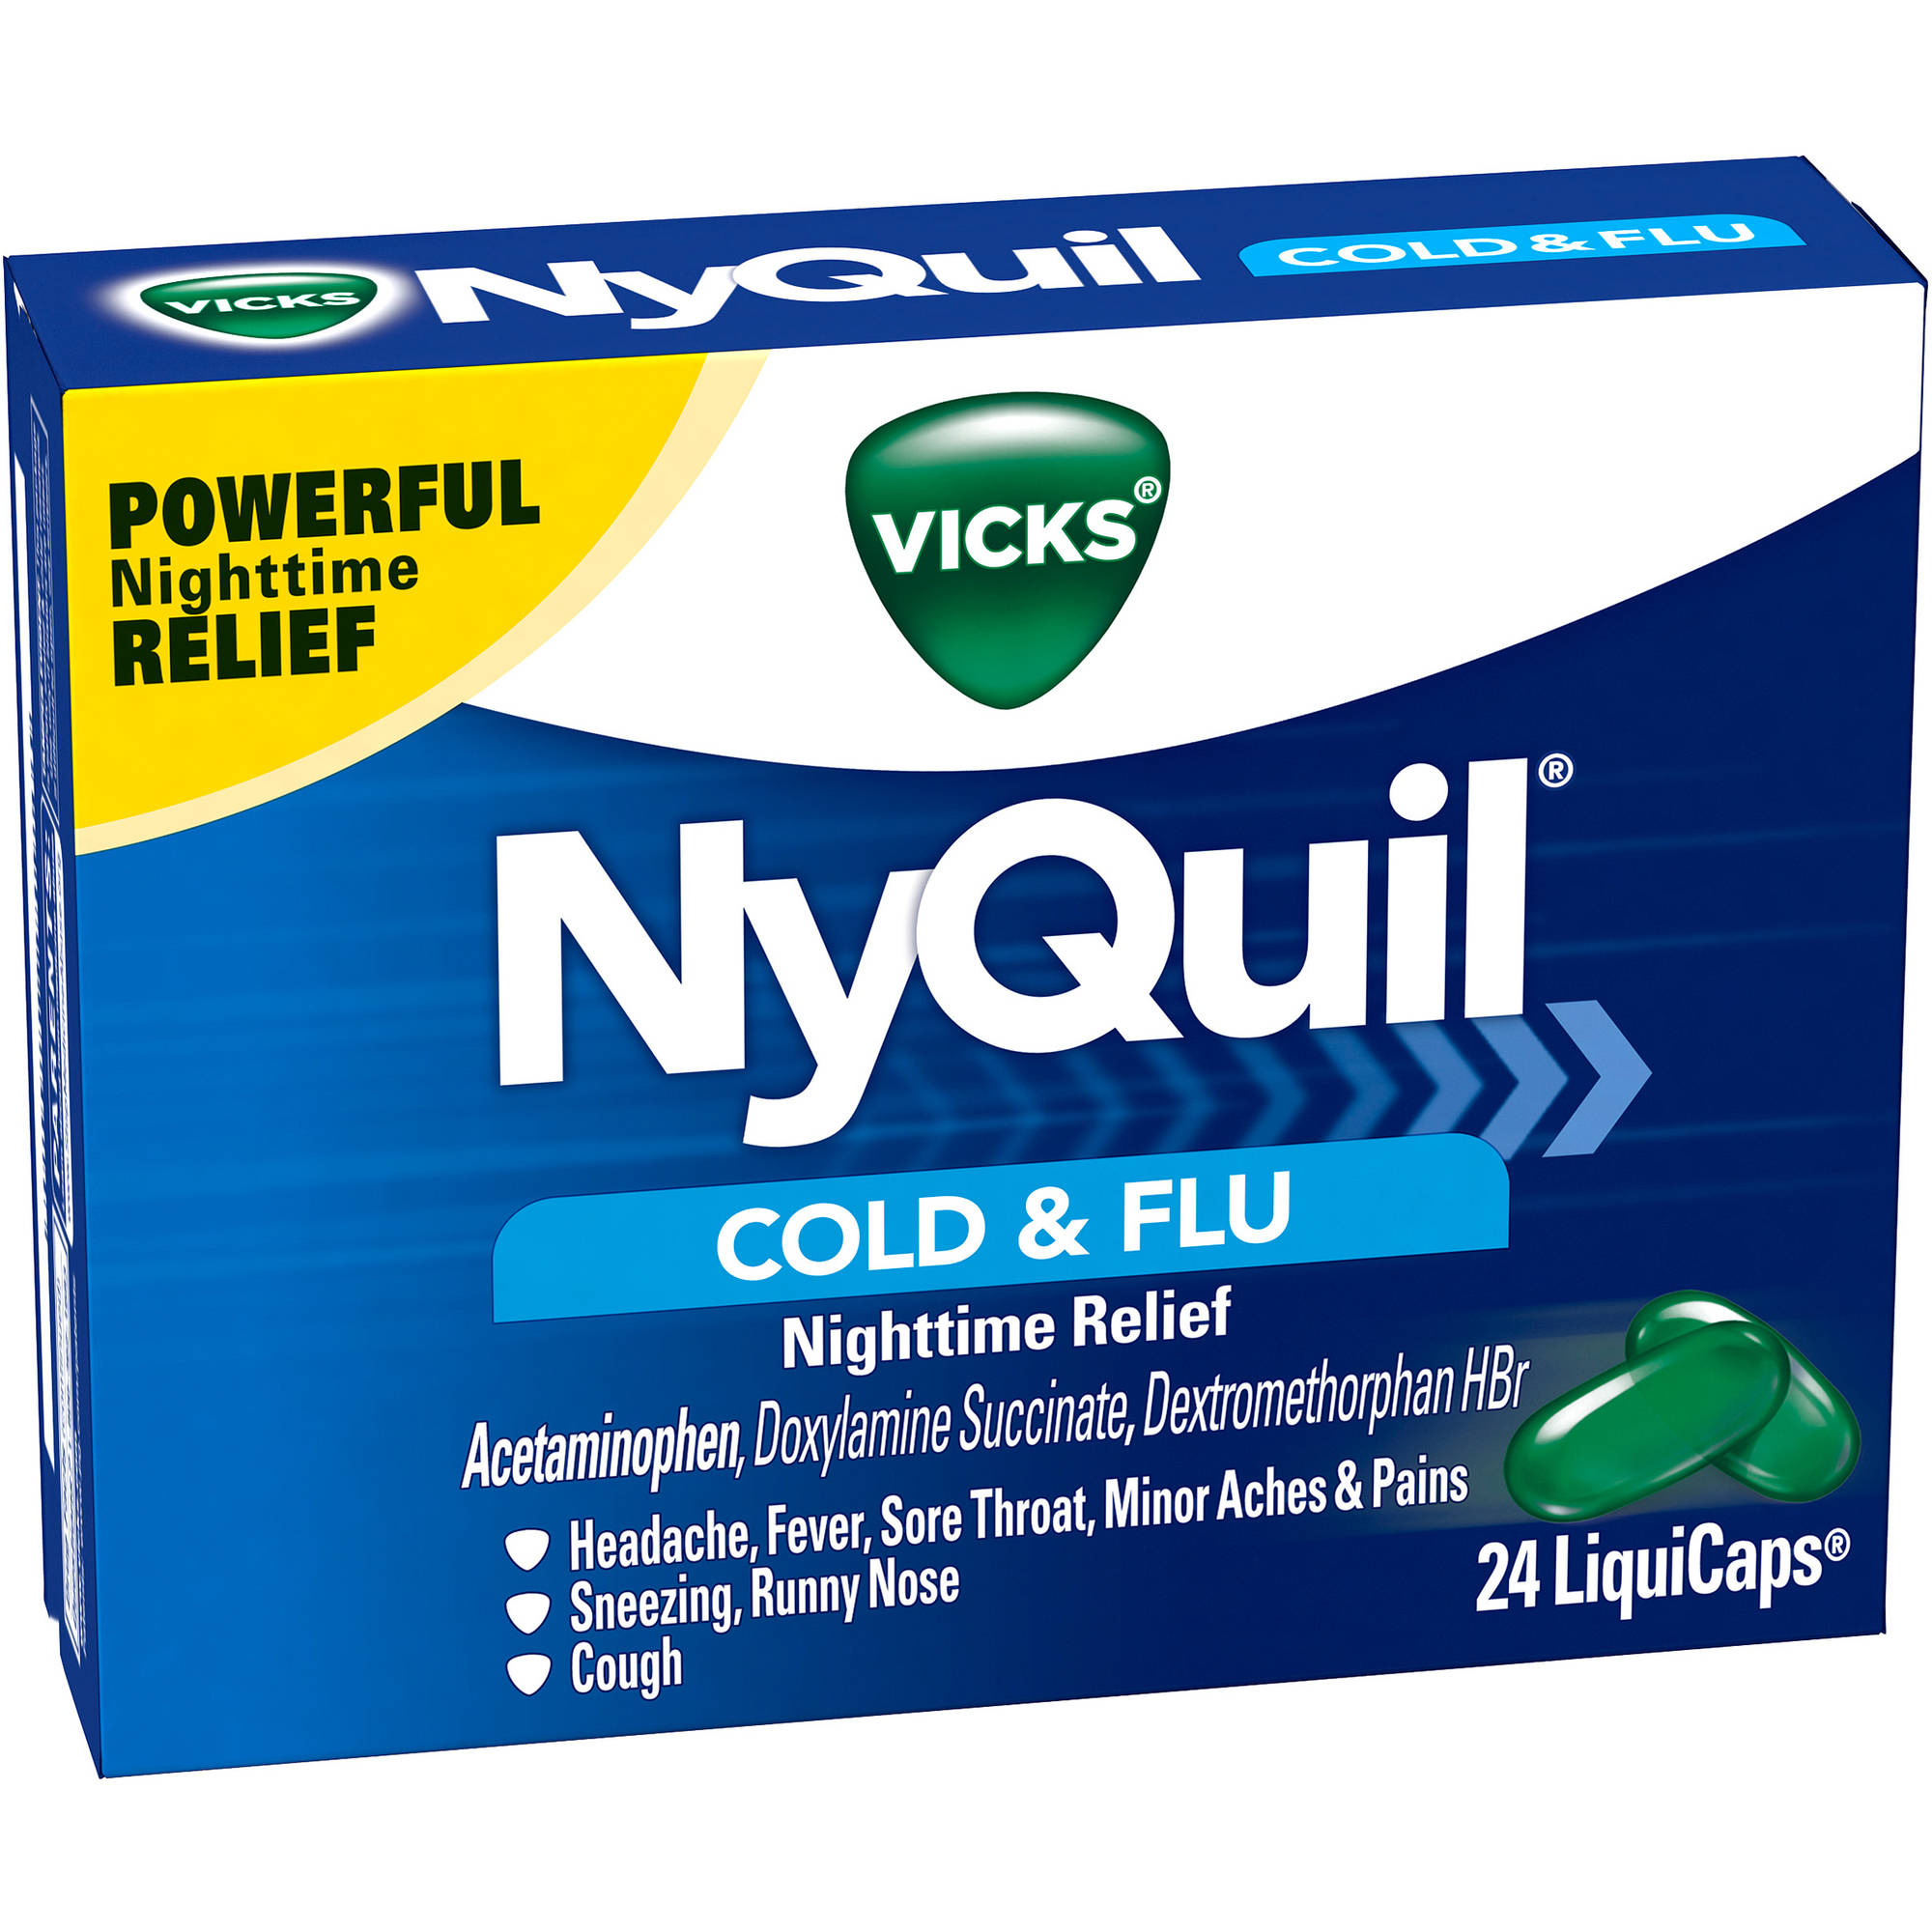 Vicks NyQuil Cold & Flu Nighttime Relief LiquiCaps, 24 count